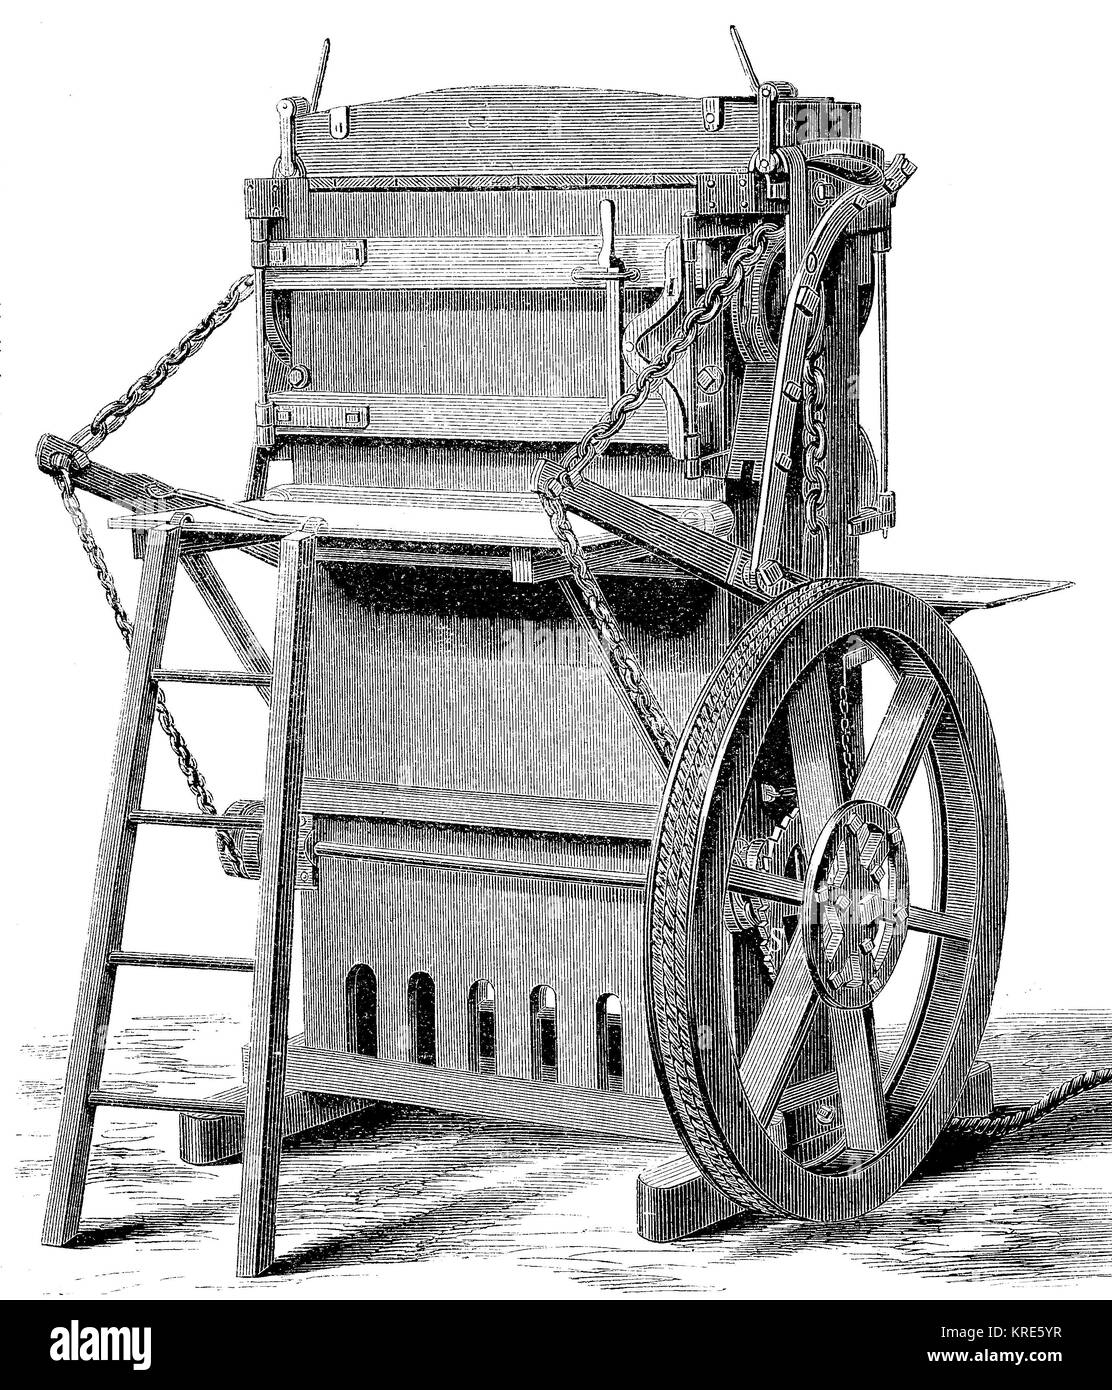 American baler for compressing loose products such as cotton, wool, hay, seaweed and the like, from Jacob Price, - Stock Image